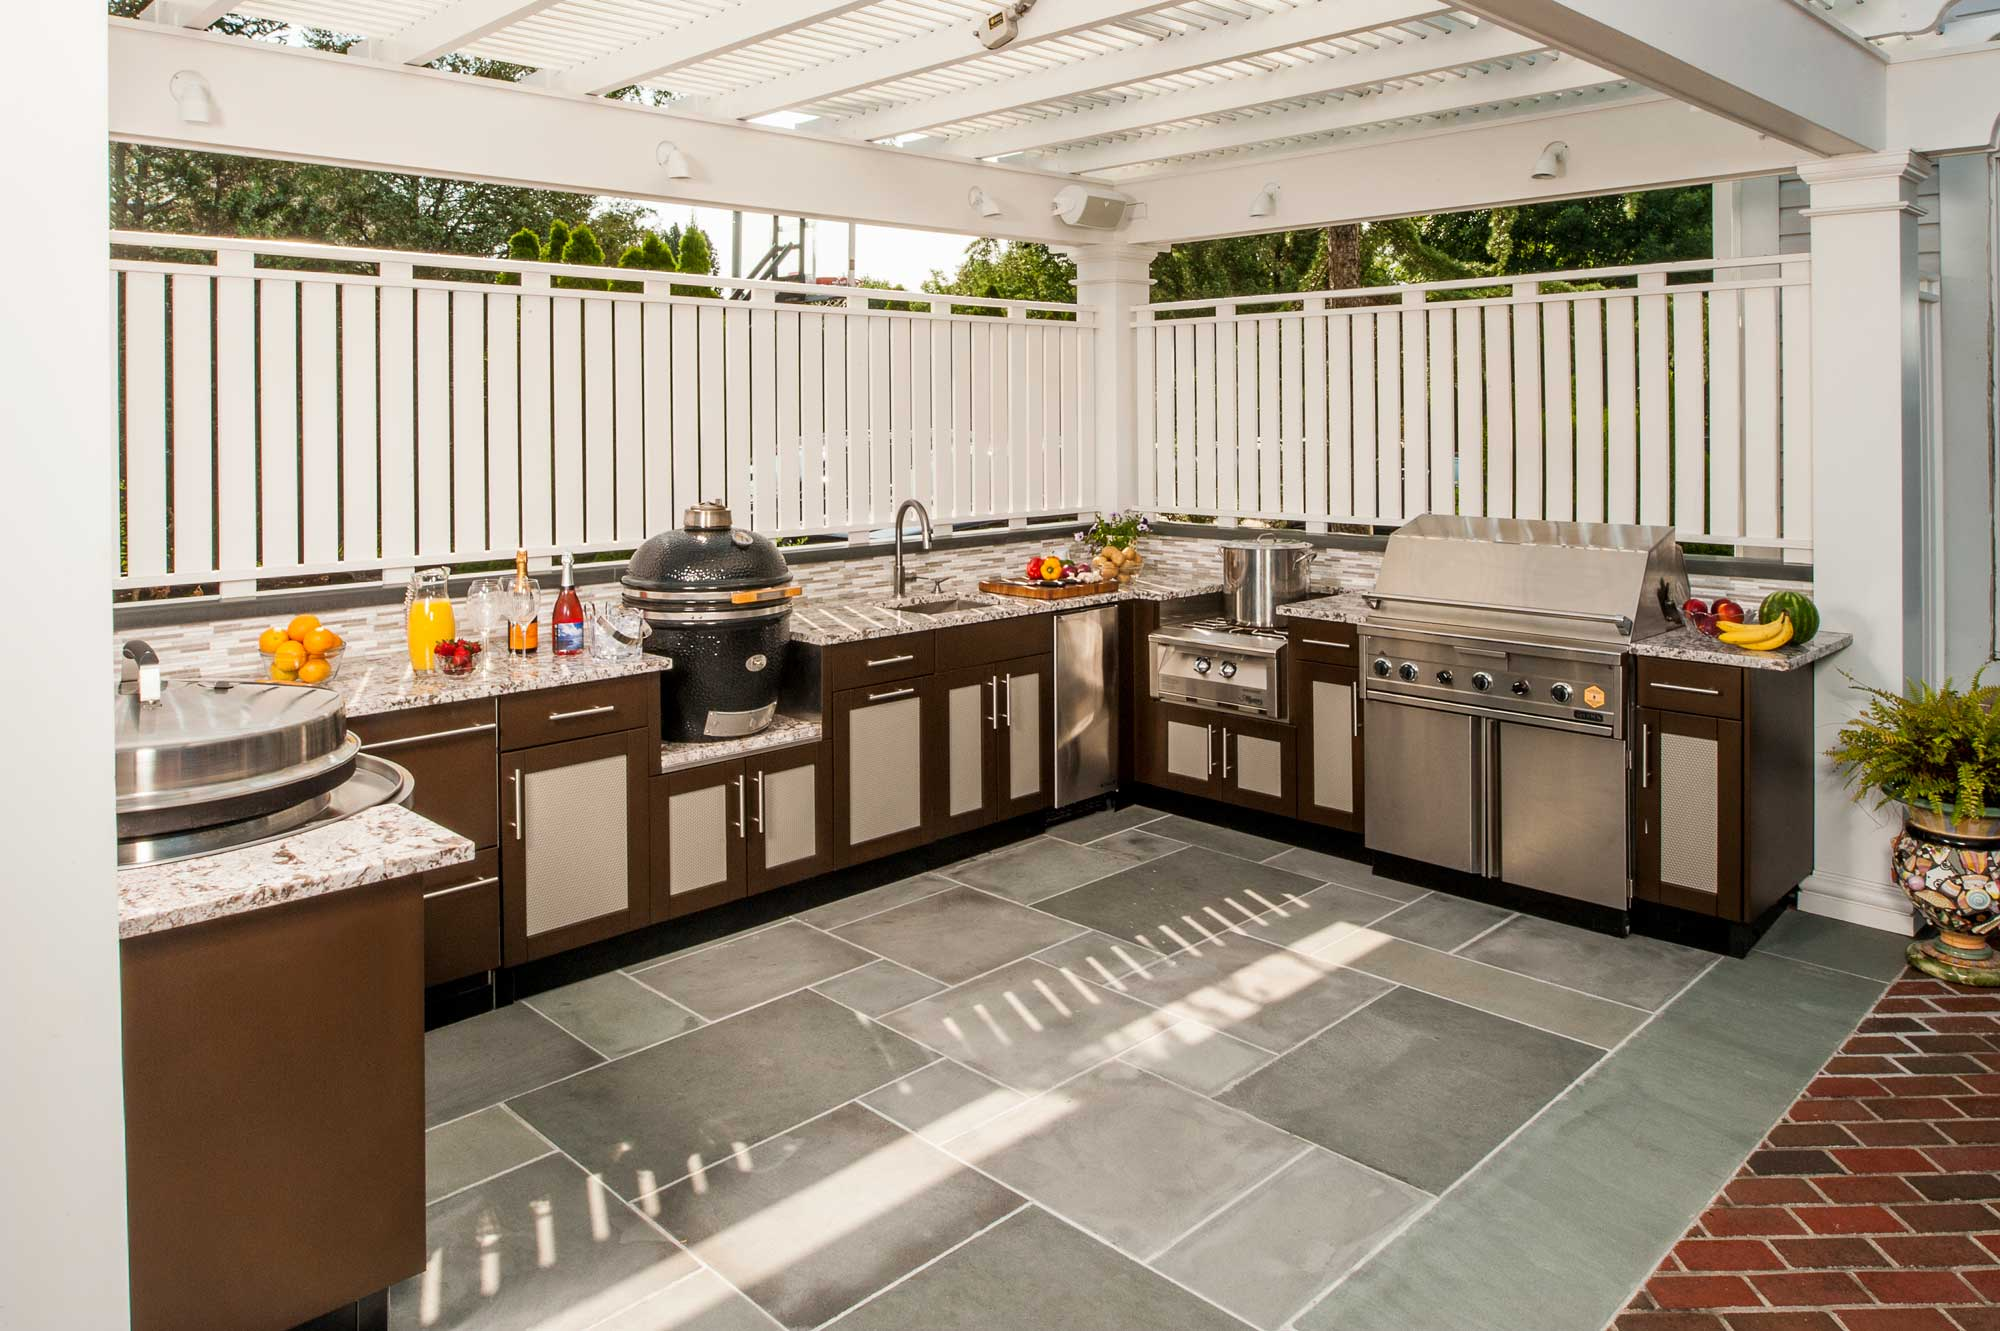 The BBQ Island vs. the Outdoor Kitchen